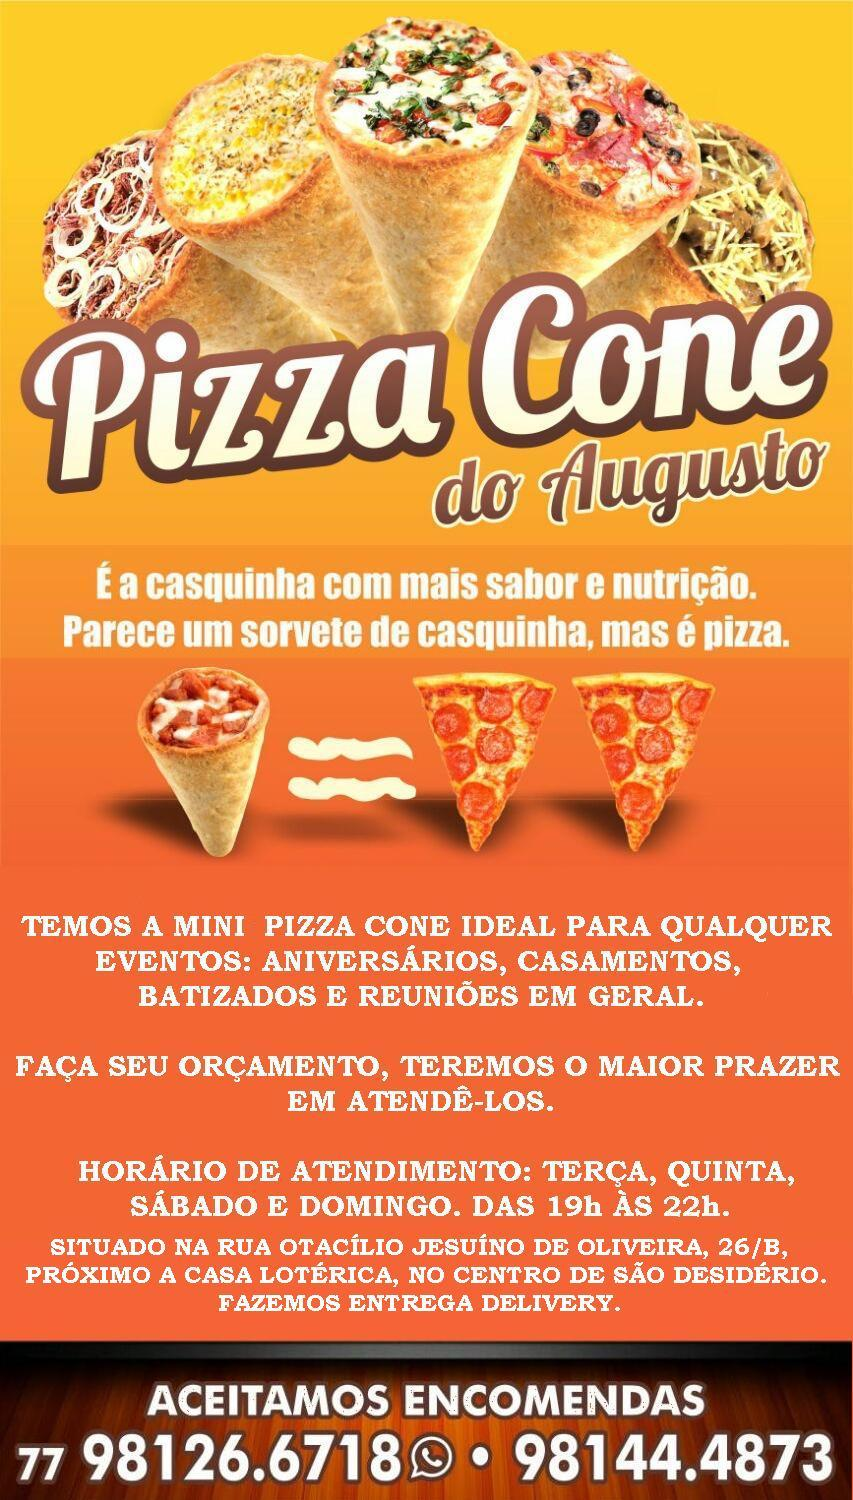 PIZZA CONE DO AUGUSTO